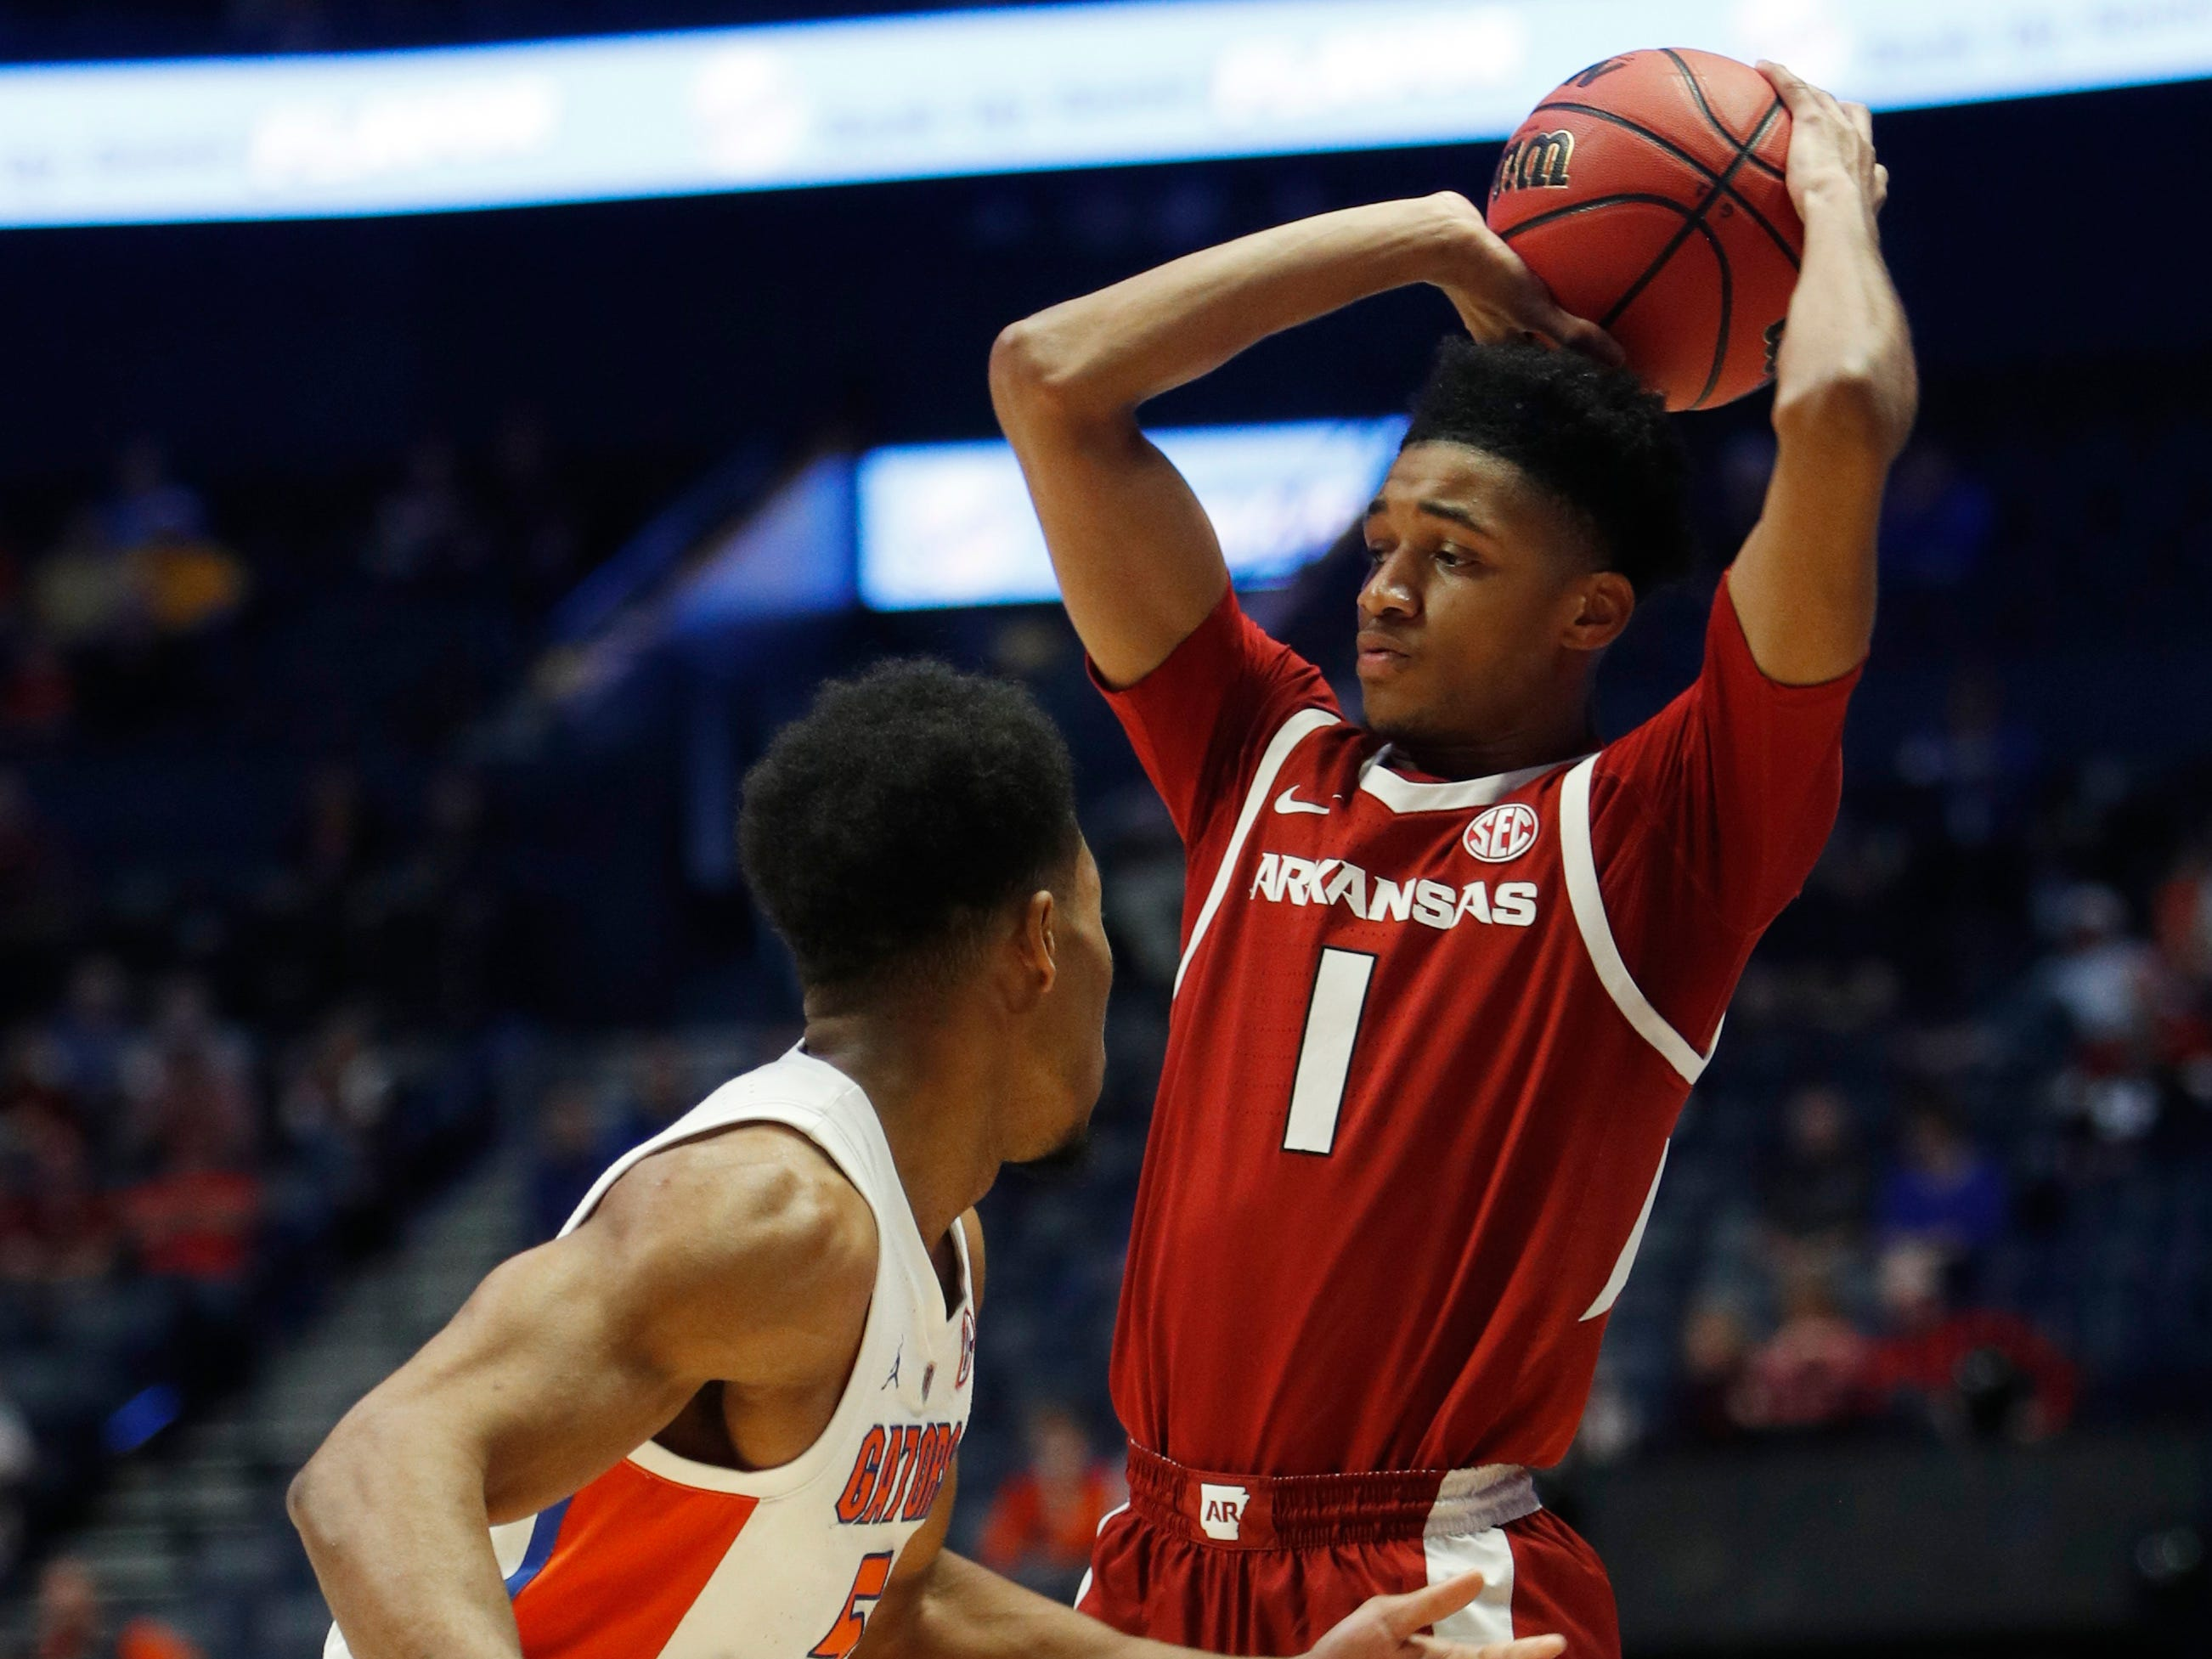 Arkansas guard Isaiah Joe (1) tries to move the ball defended by Florida guard KeVaughn Allen (5) during the first half of the SEC Men's Basketball Tournament game at Bridgestone Arena in Nashville, Tenn., Thursday, March 14, 2019.